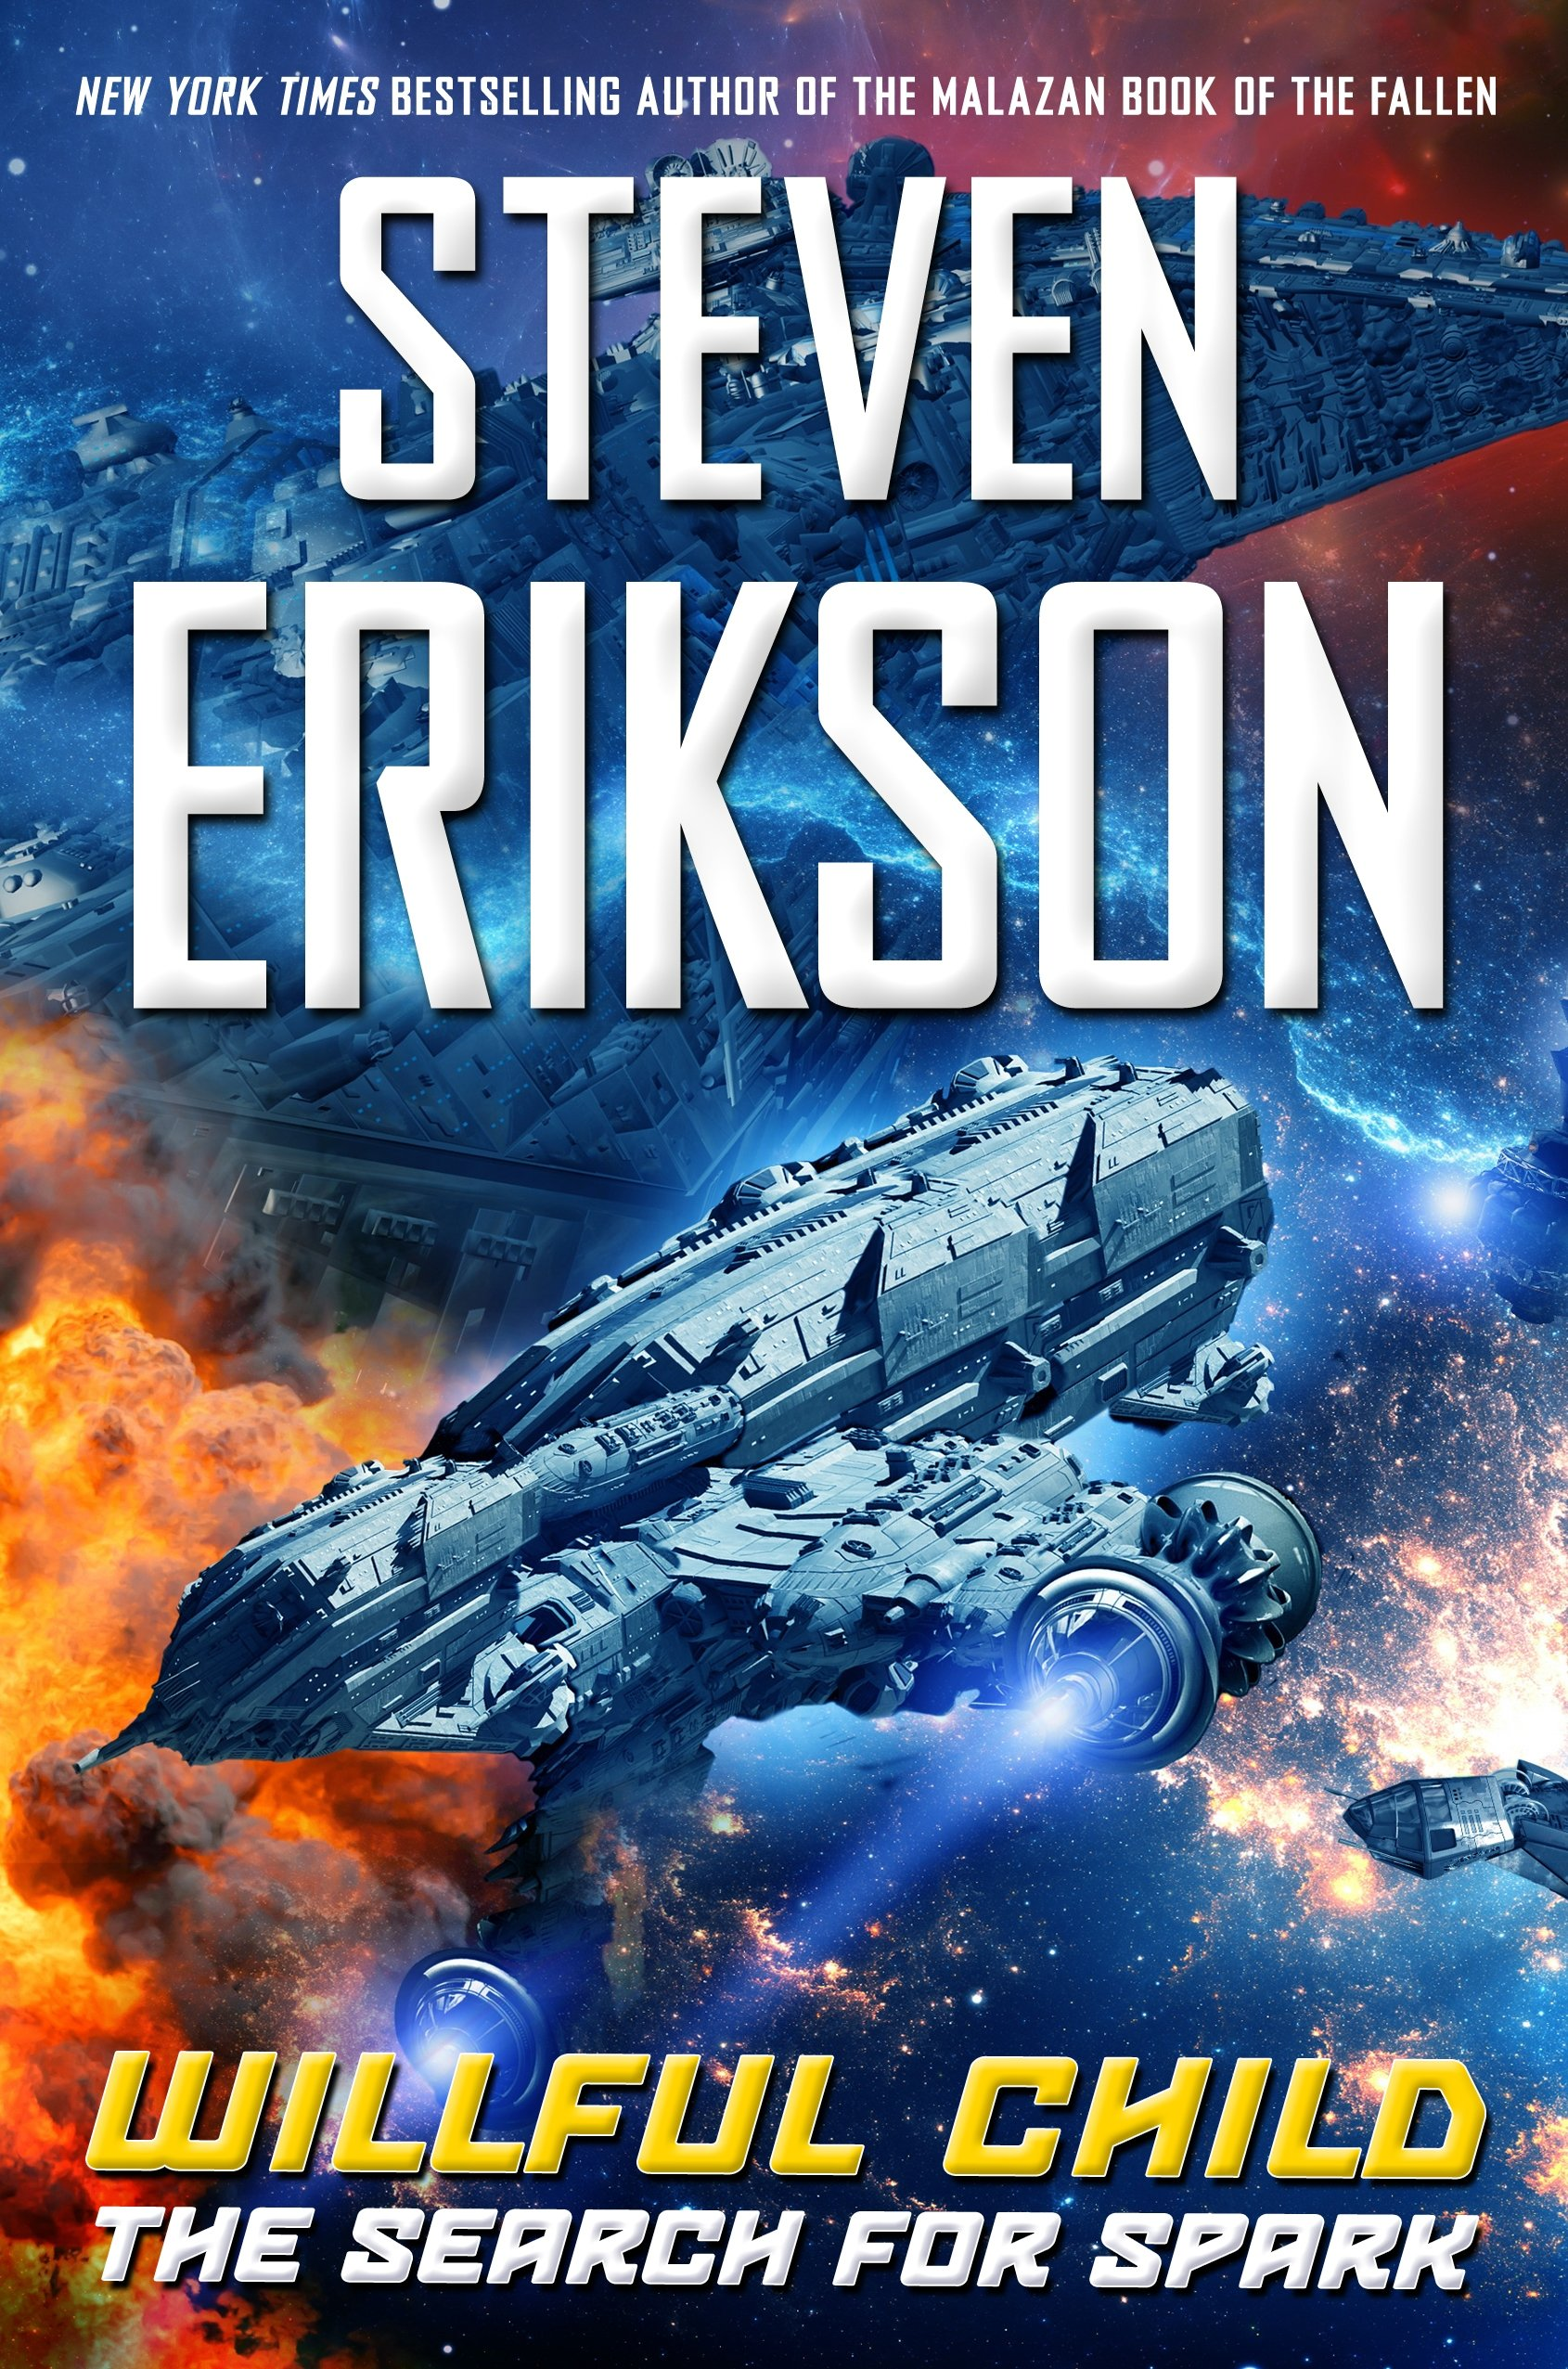 Willful Child: The Search For Spark: Steven Erikson: 9780765383969:  Amazon: Books